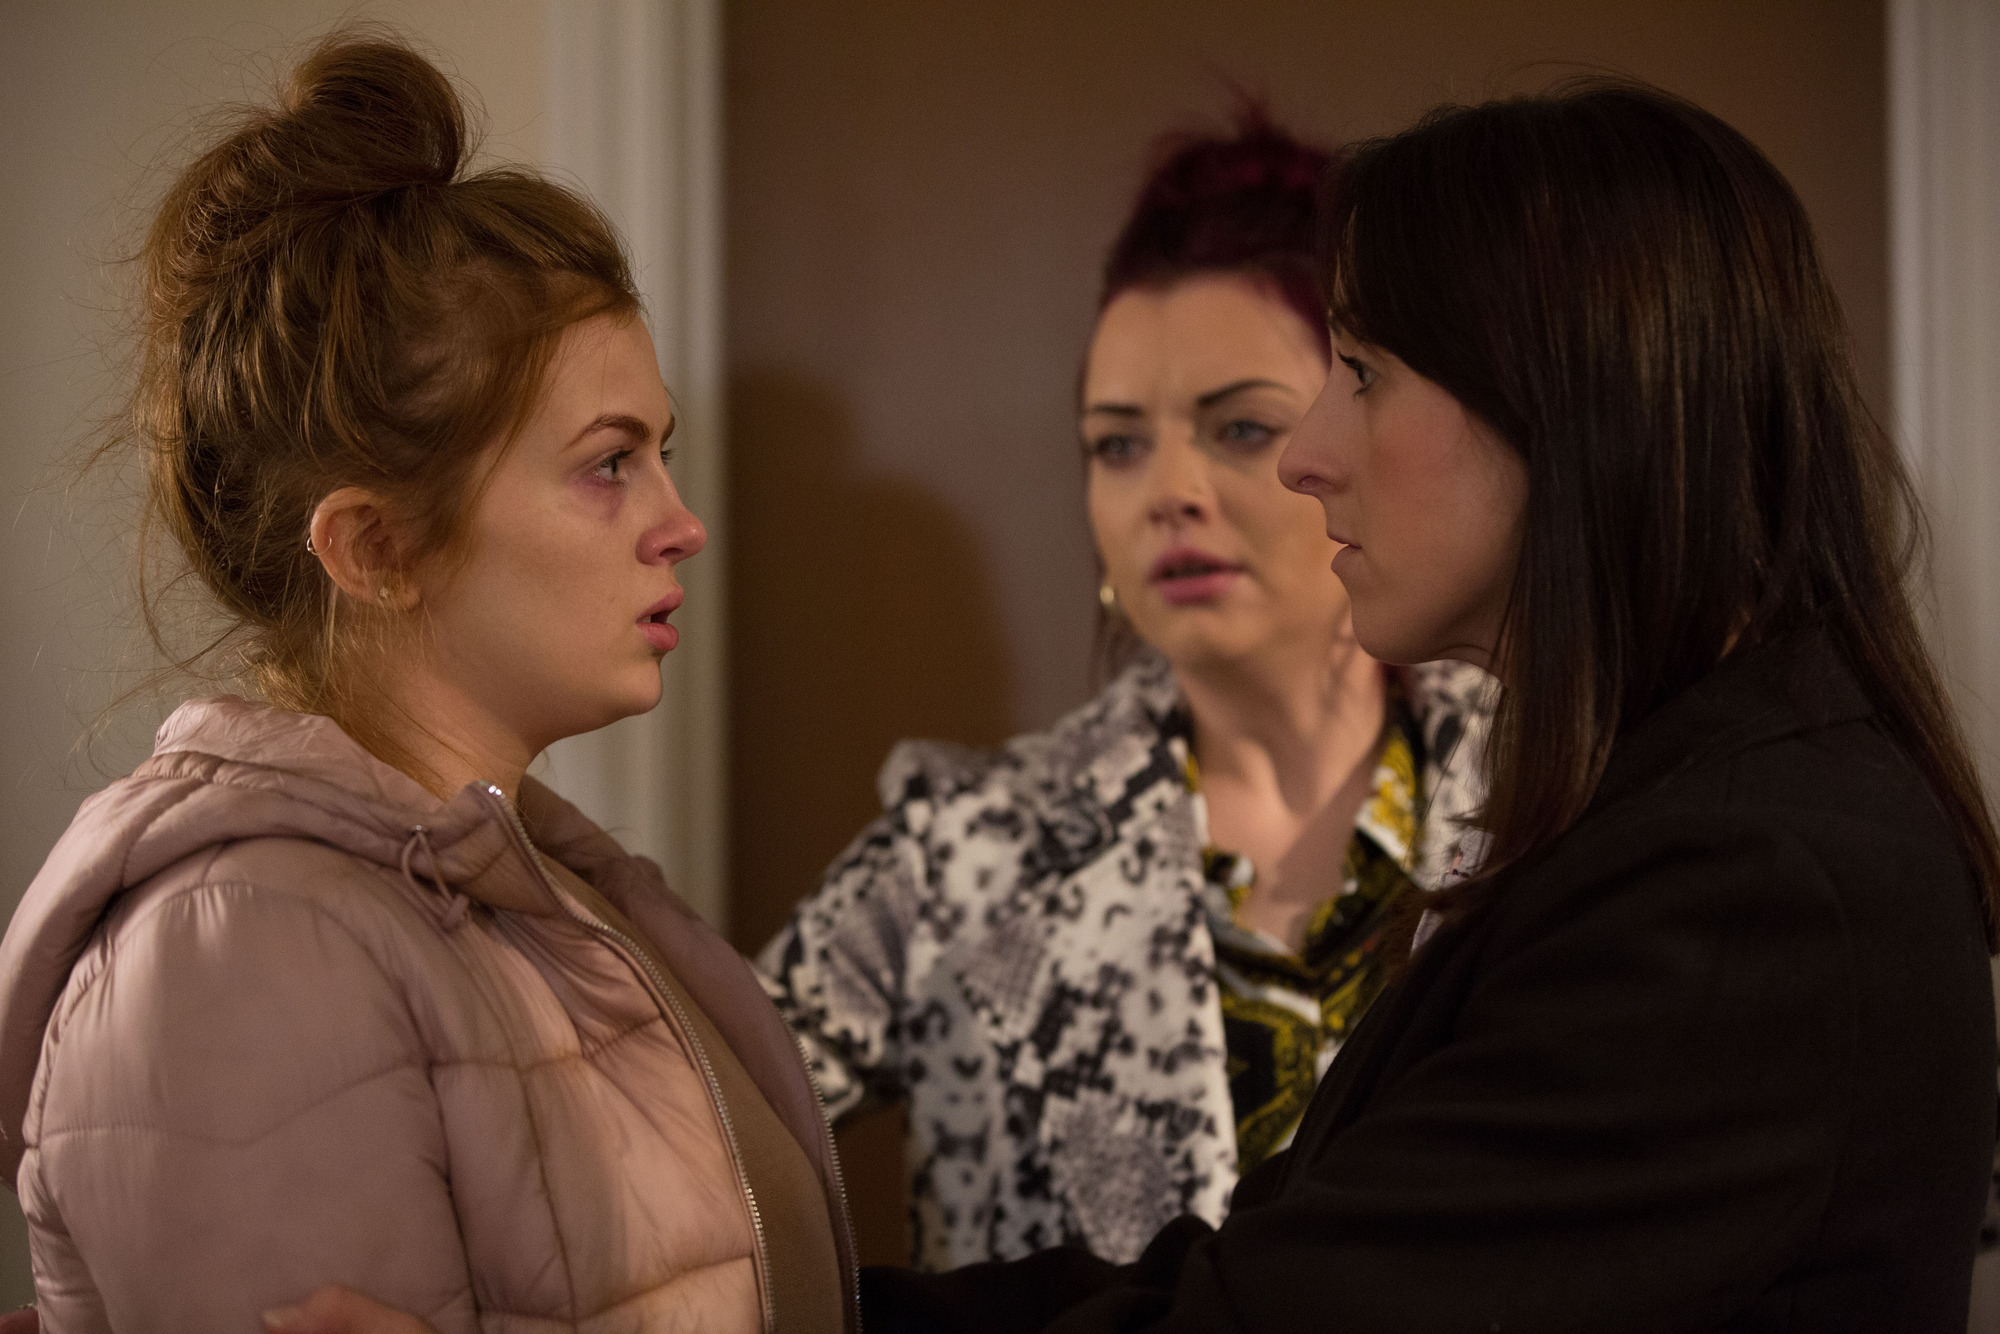 EastEnders spoilers: Tiffany Butcher turns violent on Sonia Fowler before she makes horror discovery about Evie Steele